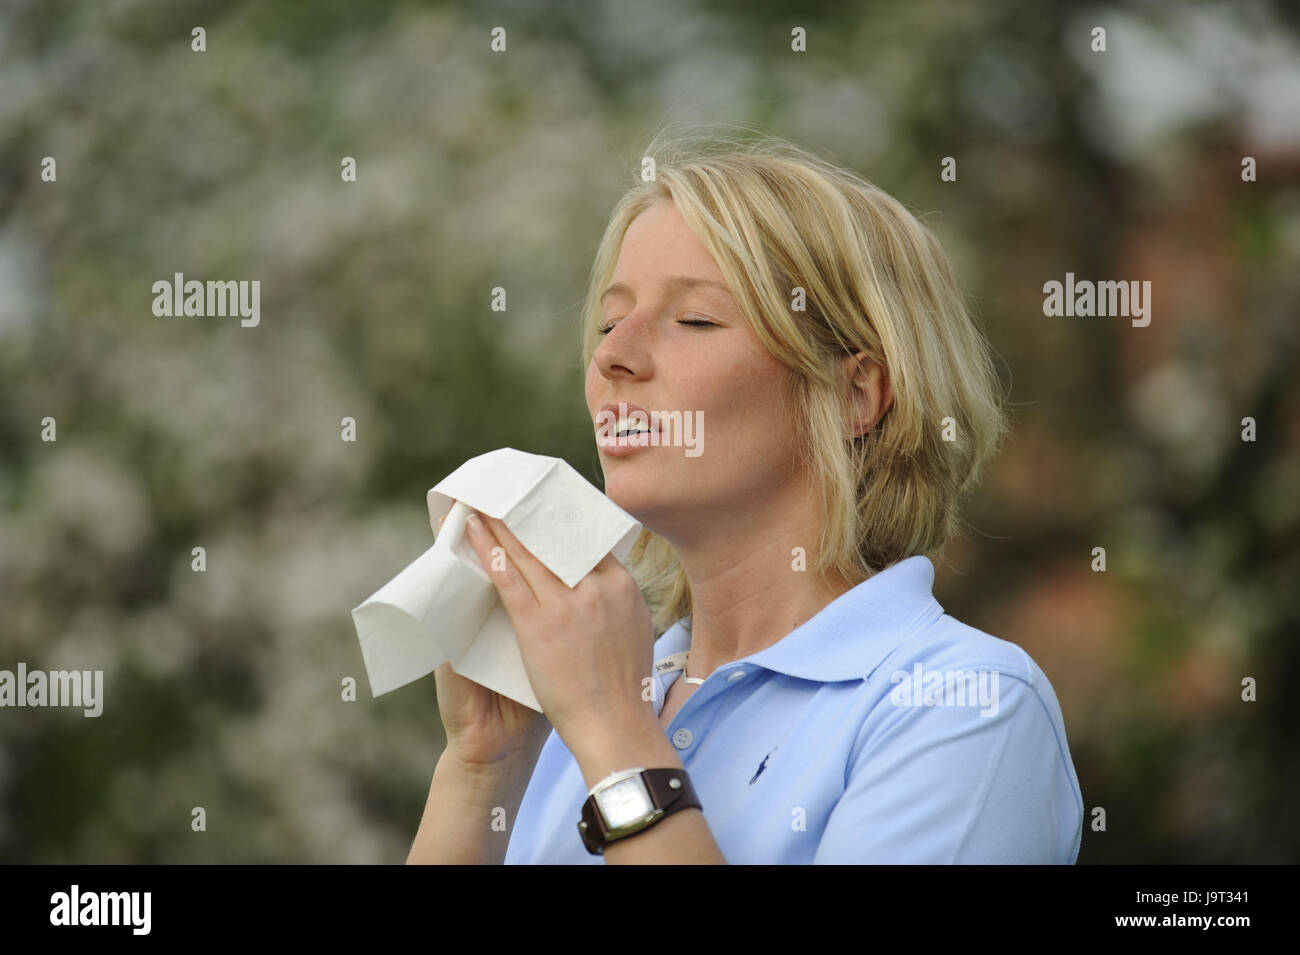 Woman,young,sneeze,pollinosises,handkerchief,portrait,at the side,polling allergy,allergy,polling,polling flight,icon - Stock Image